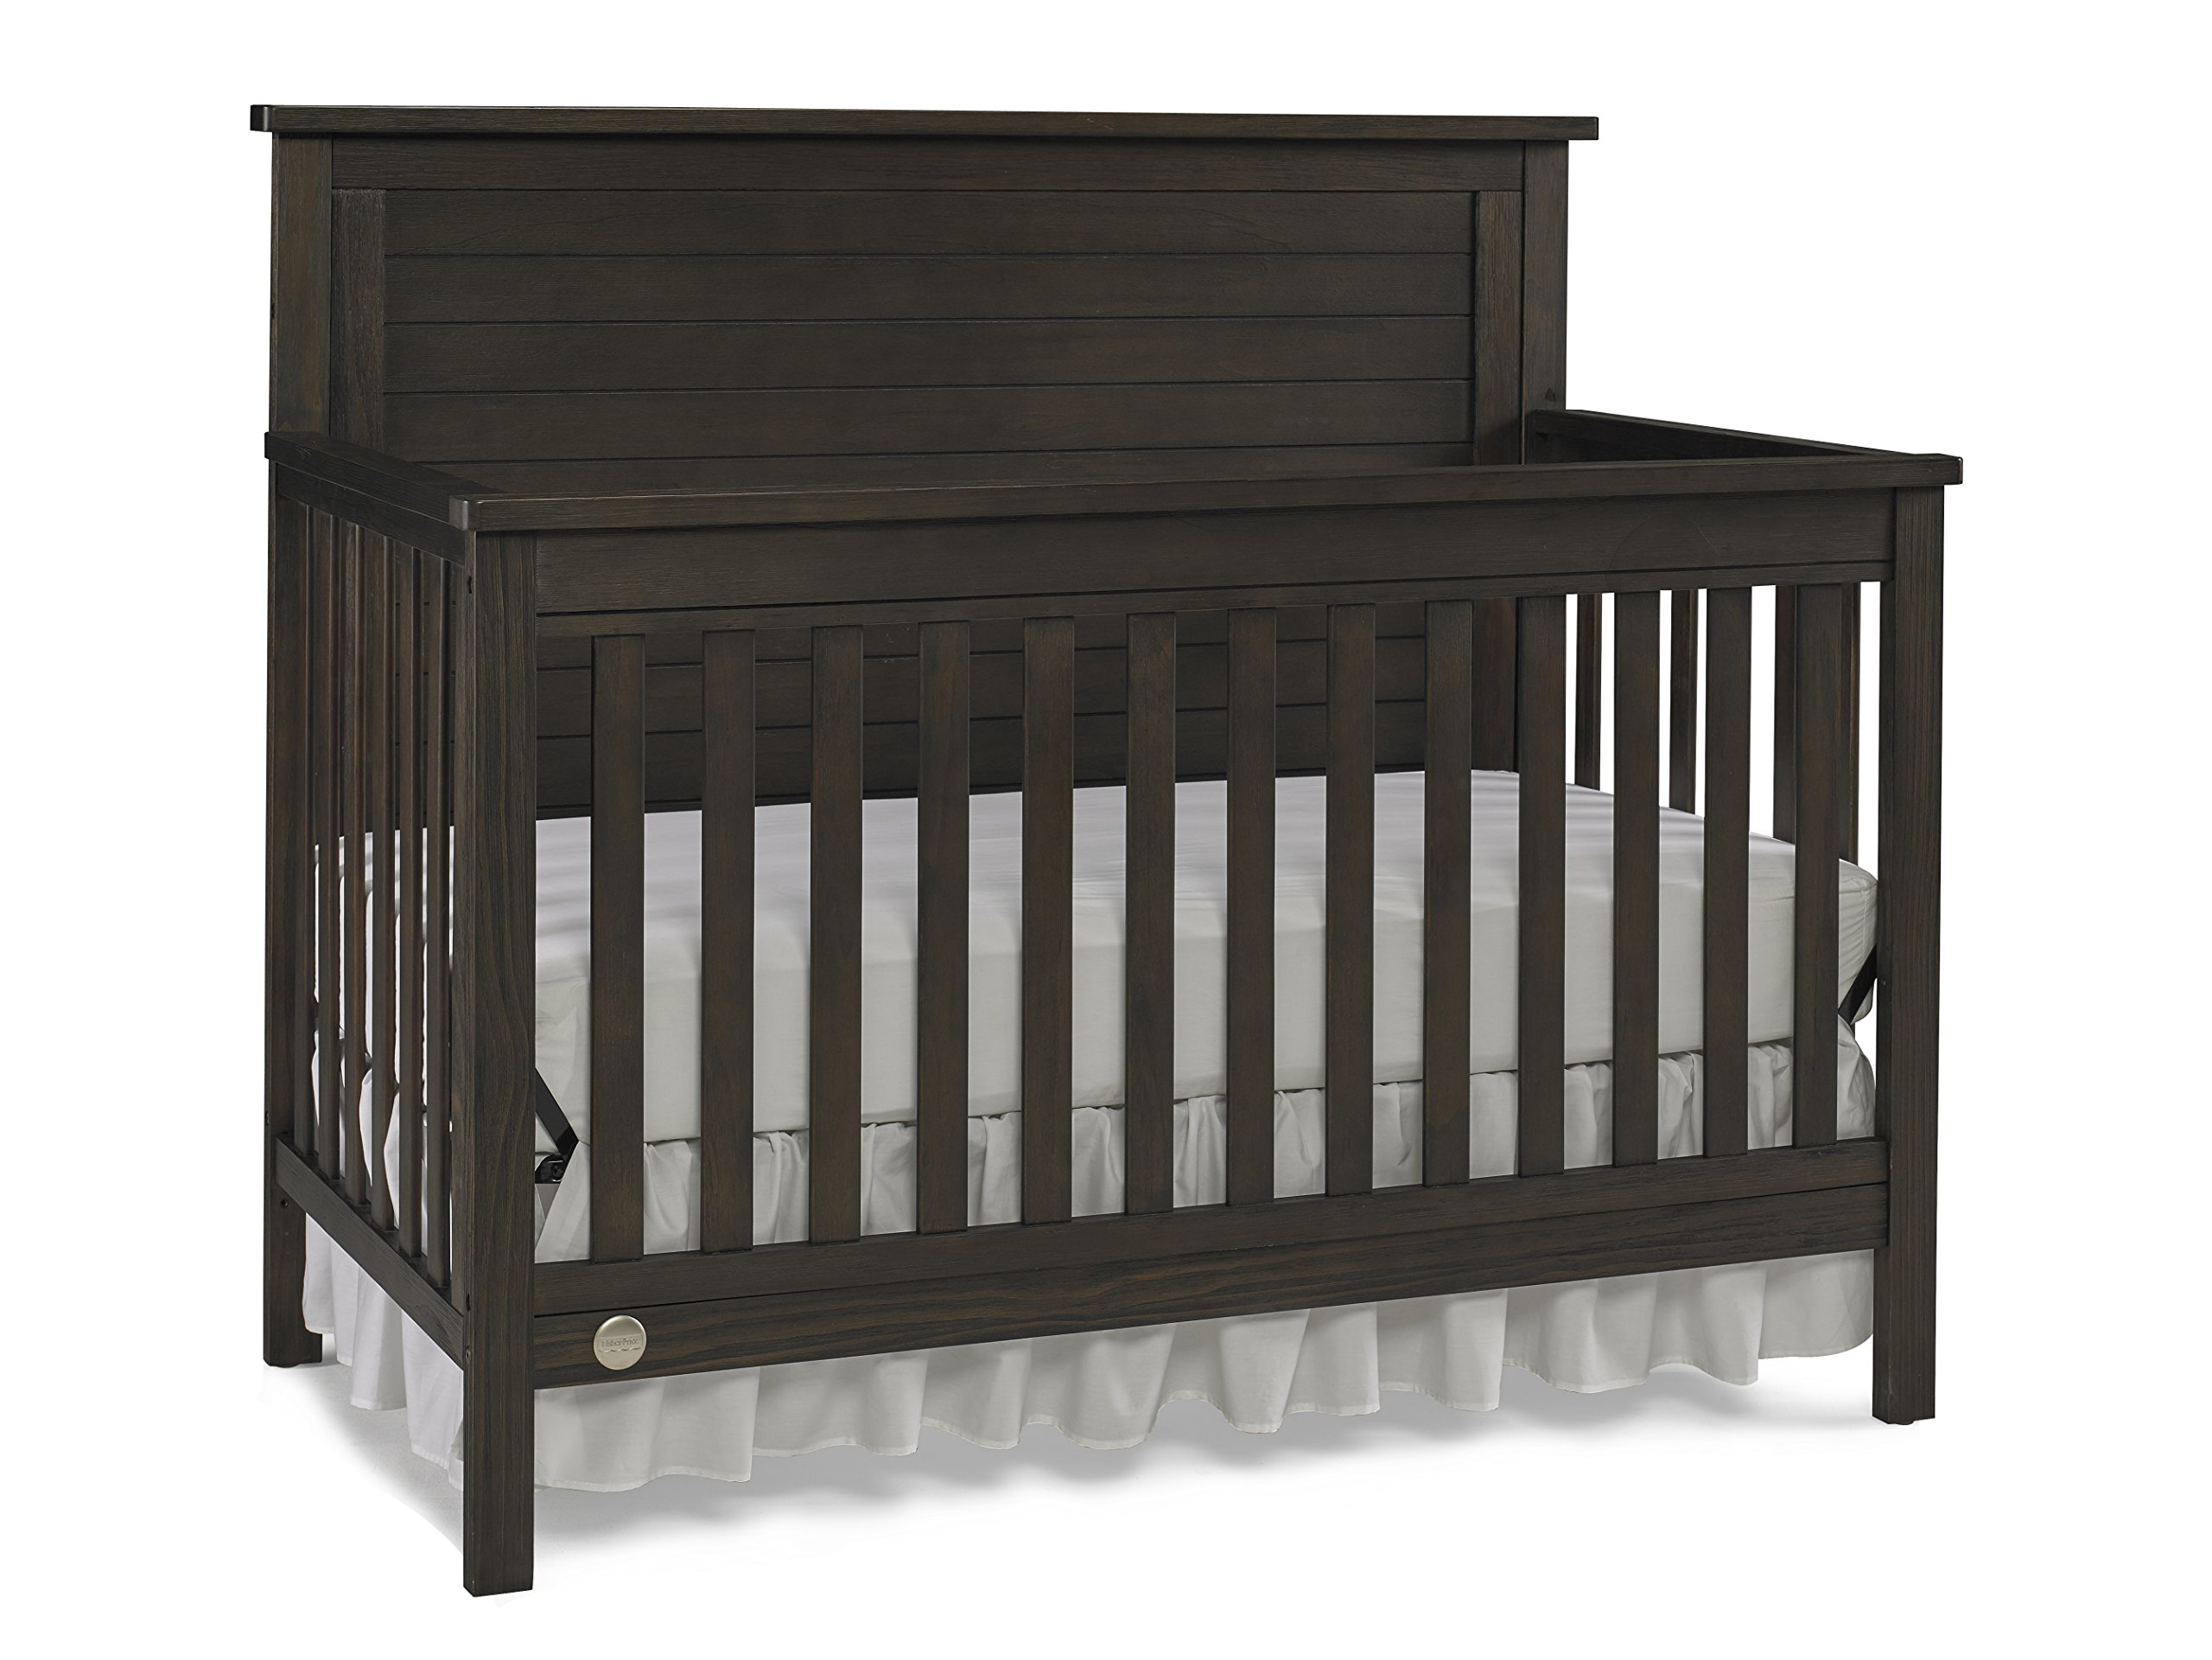 Fisher-Price Quinn 4 in 1 Convertible Crib, Wire Brushed Brown by Fisher-Price (Image #1)